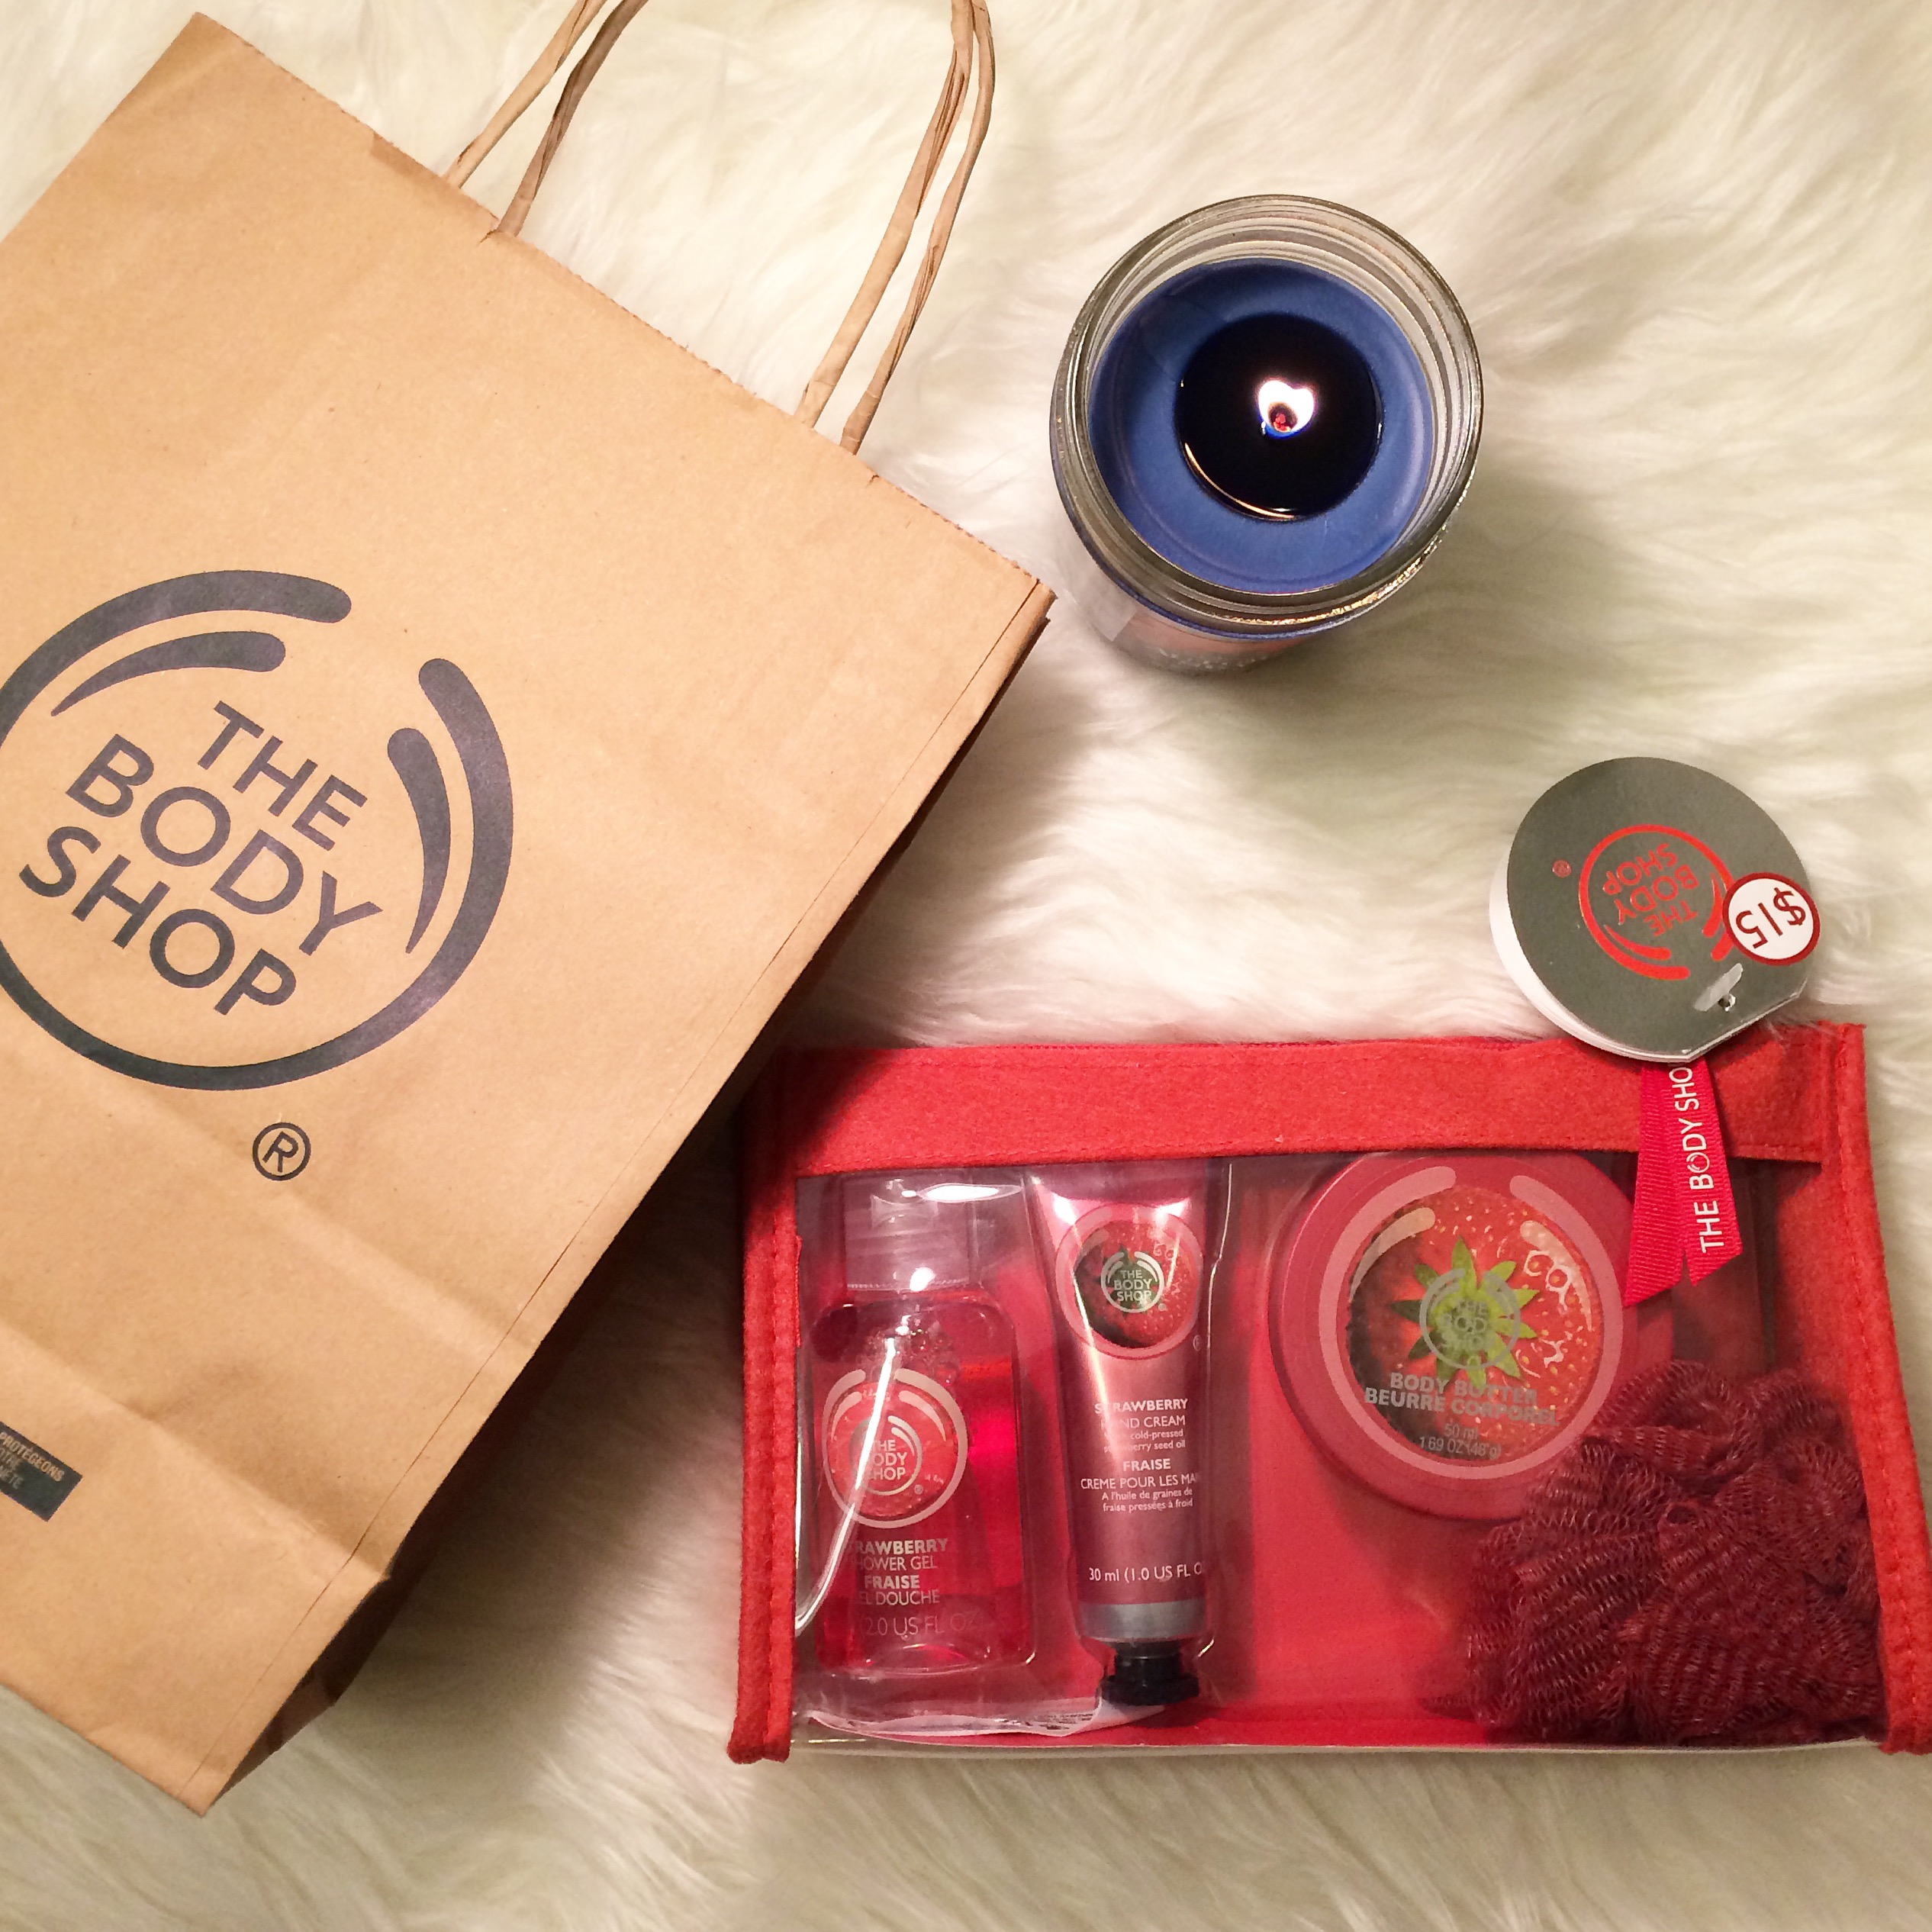 Christmas Gift Sets Body Shop.Great Christmas Gift Idea The Body Shop Strawberry Beauty